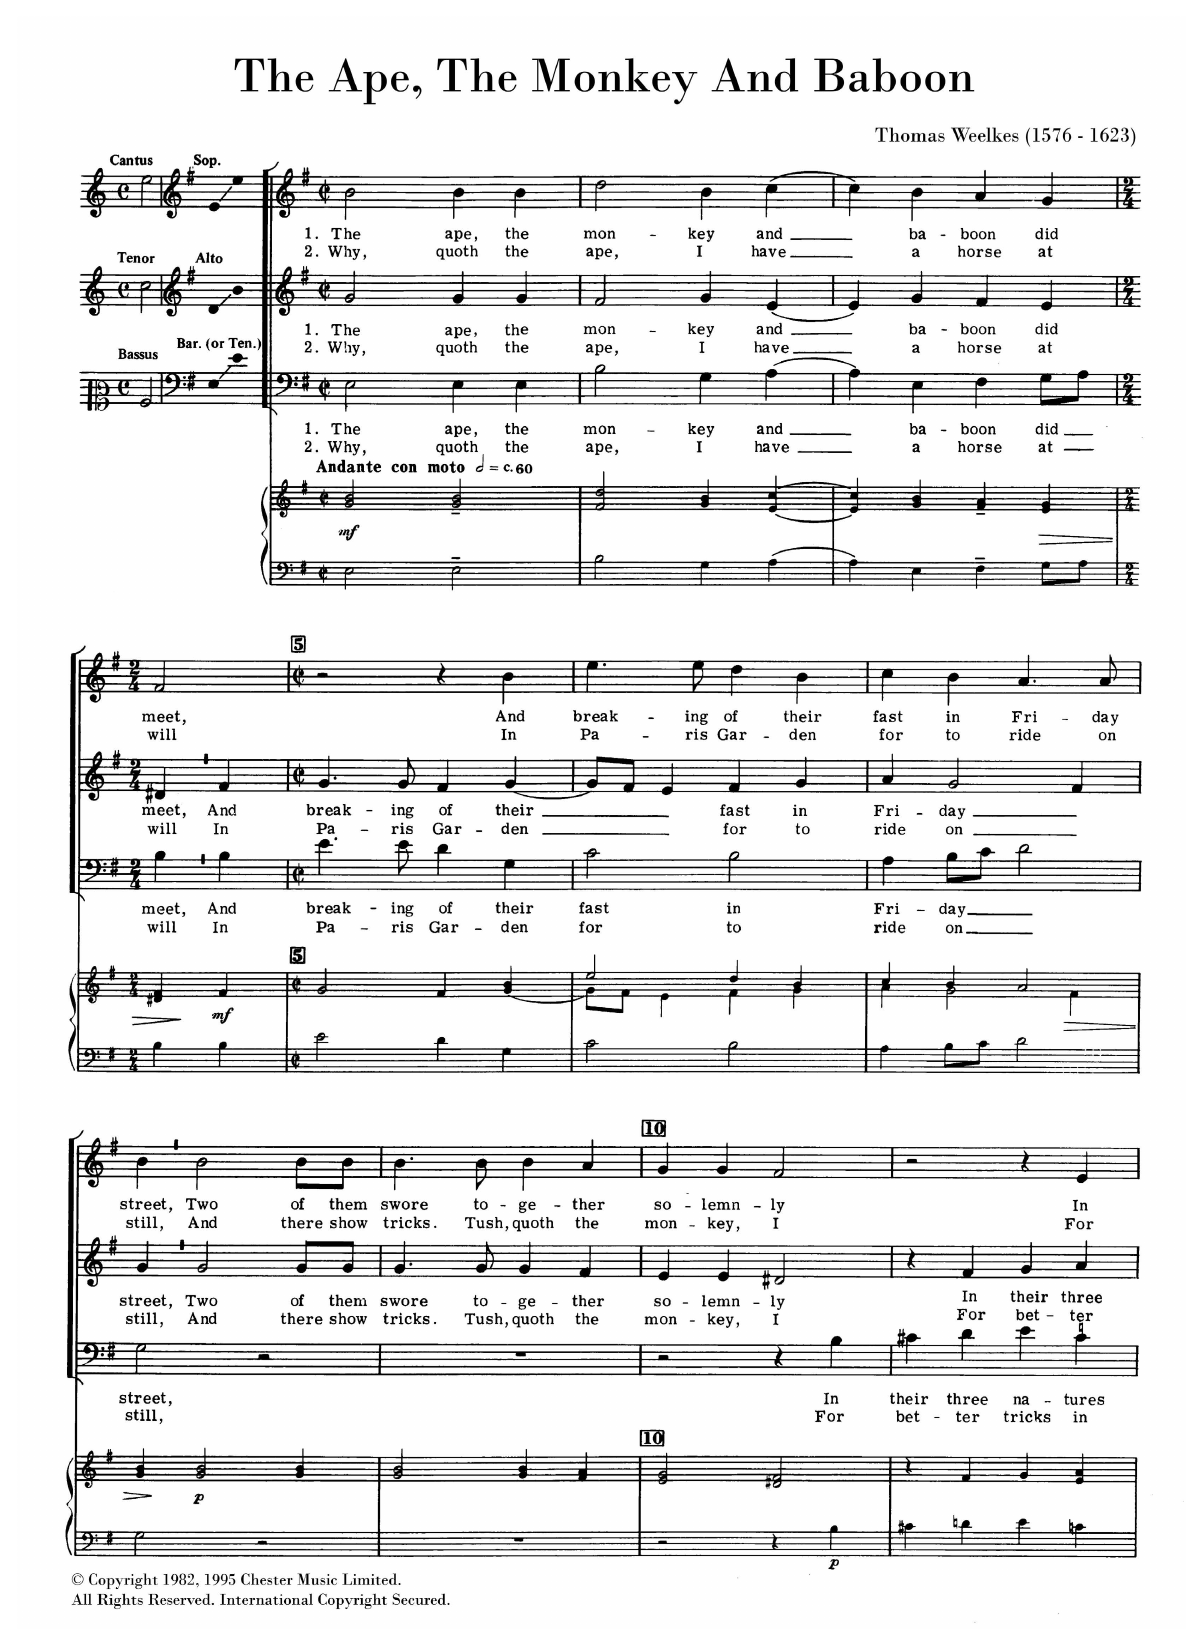 The Ape, The Monkey And Babboon Sheet Music